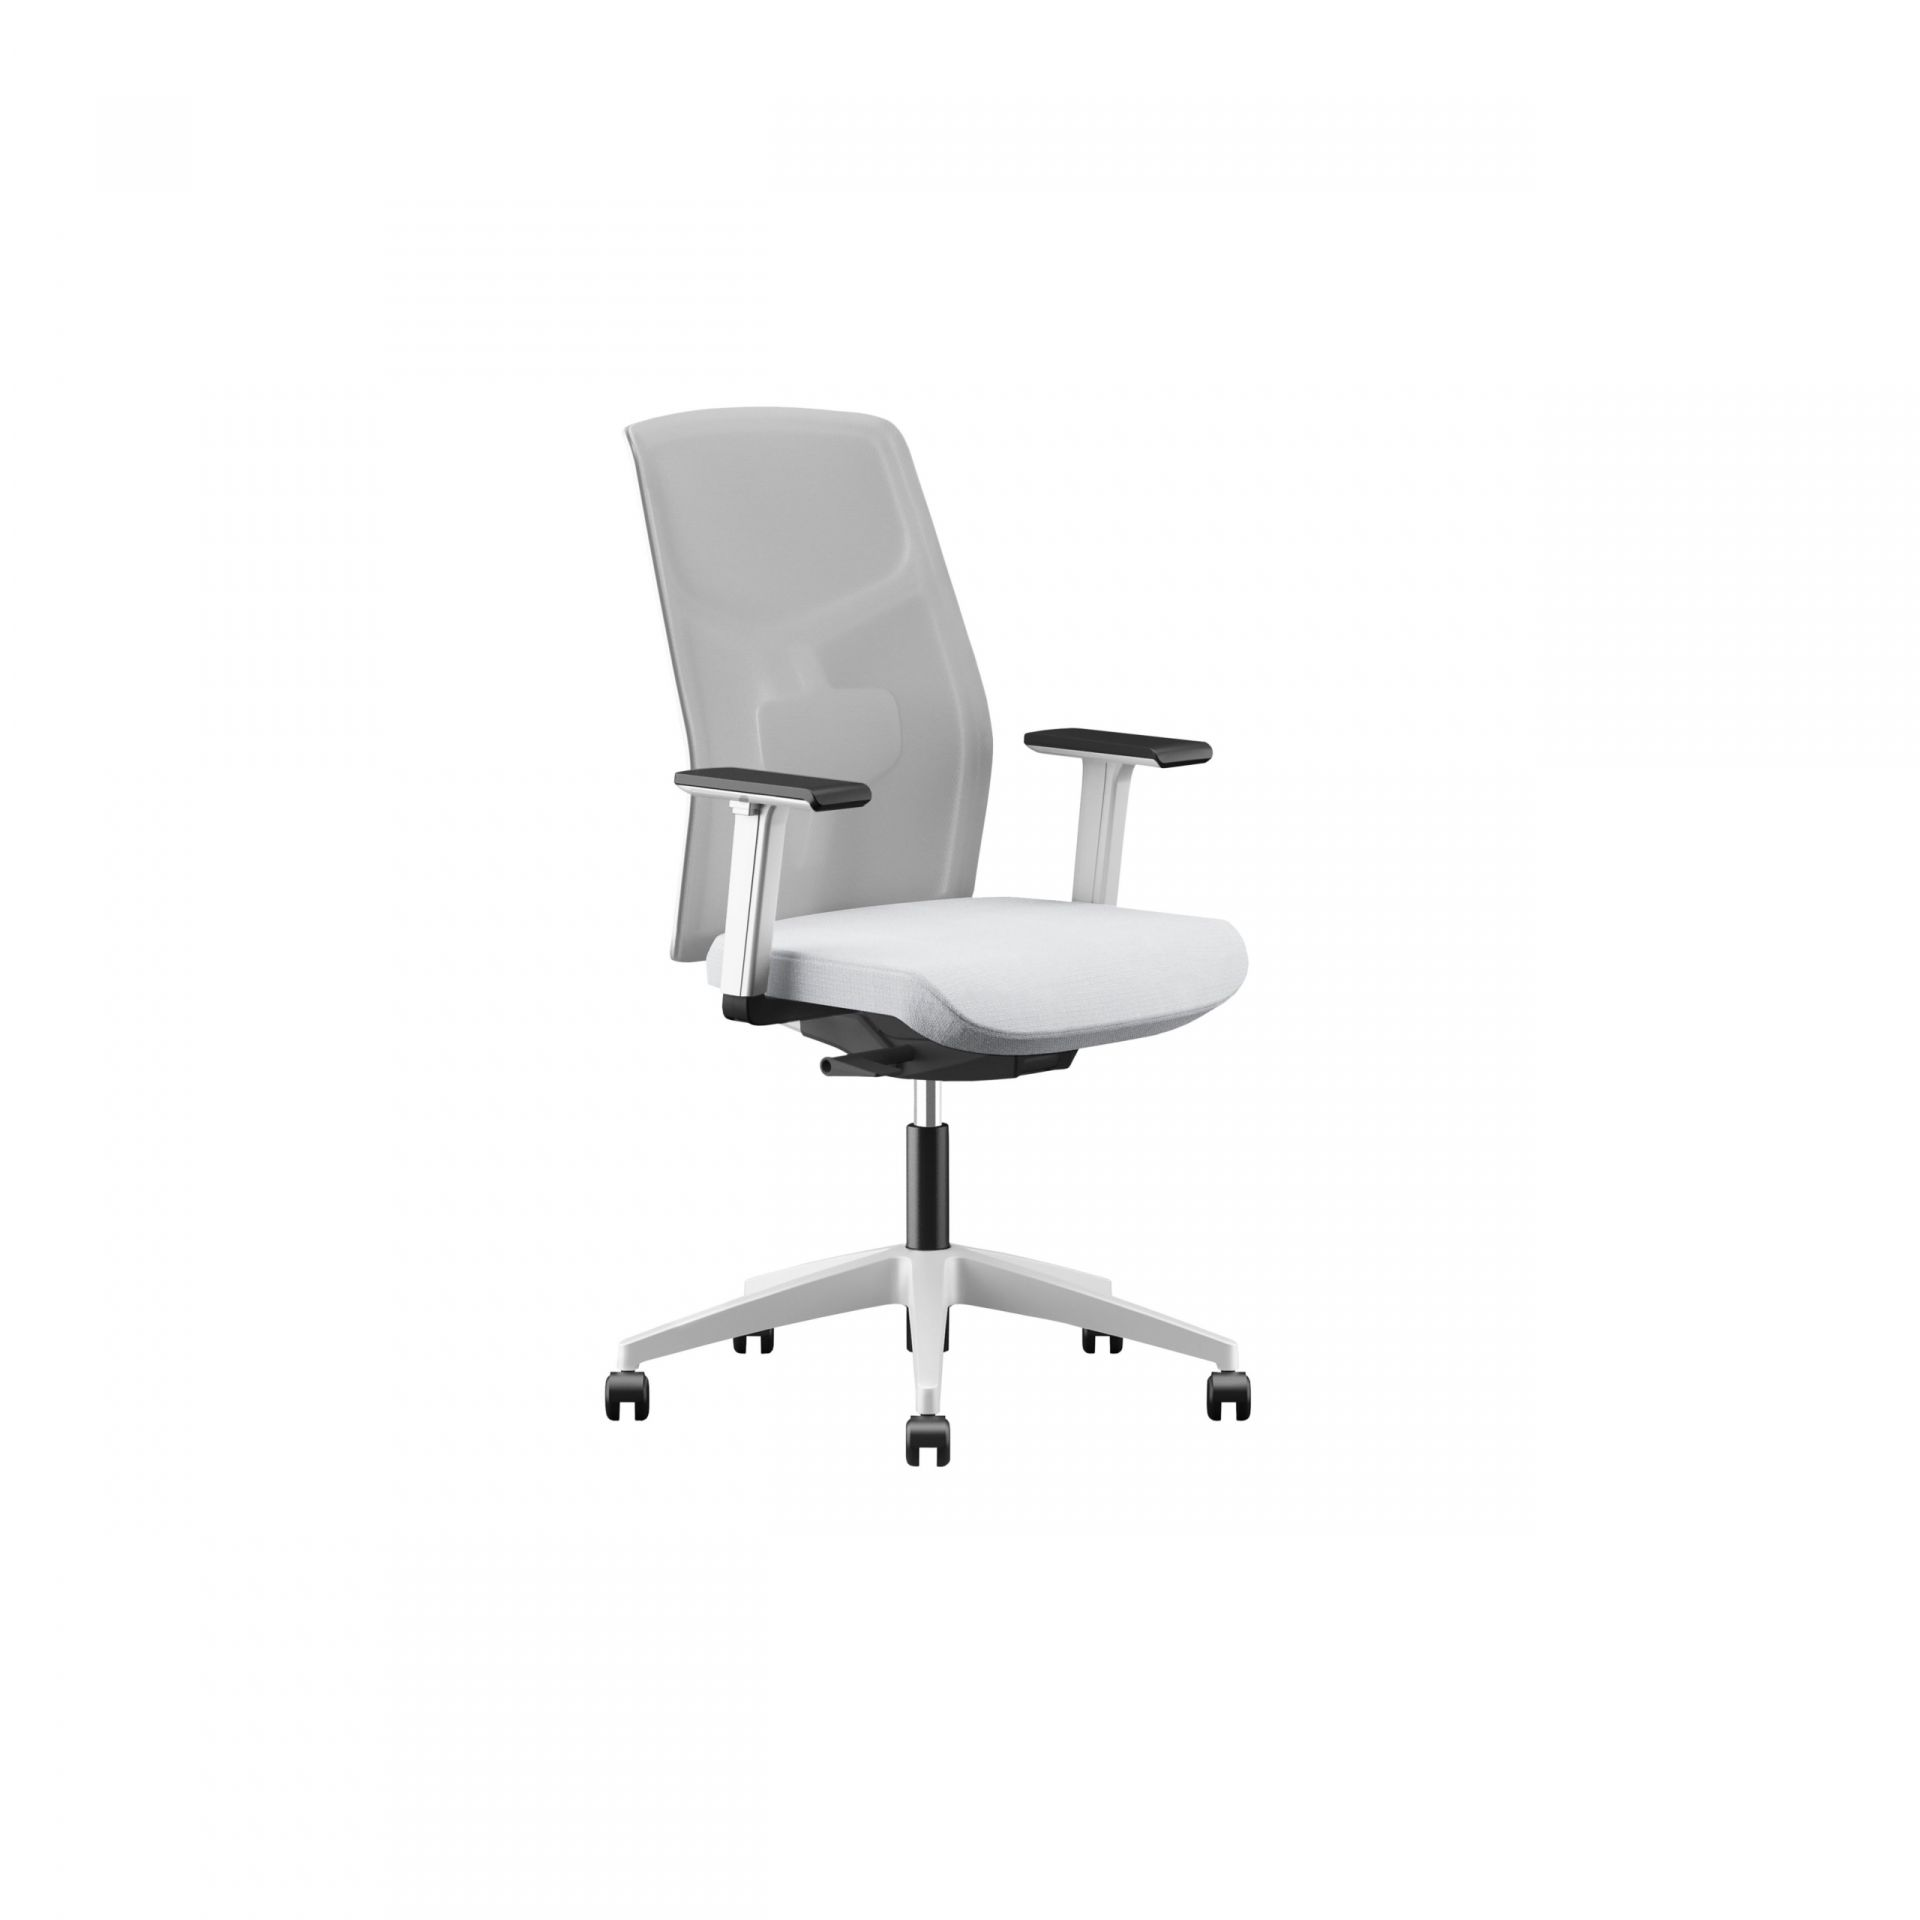 Yoyo Office chair with open mesh back